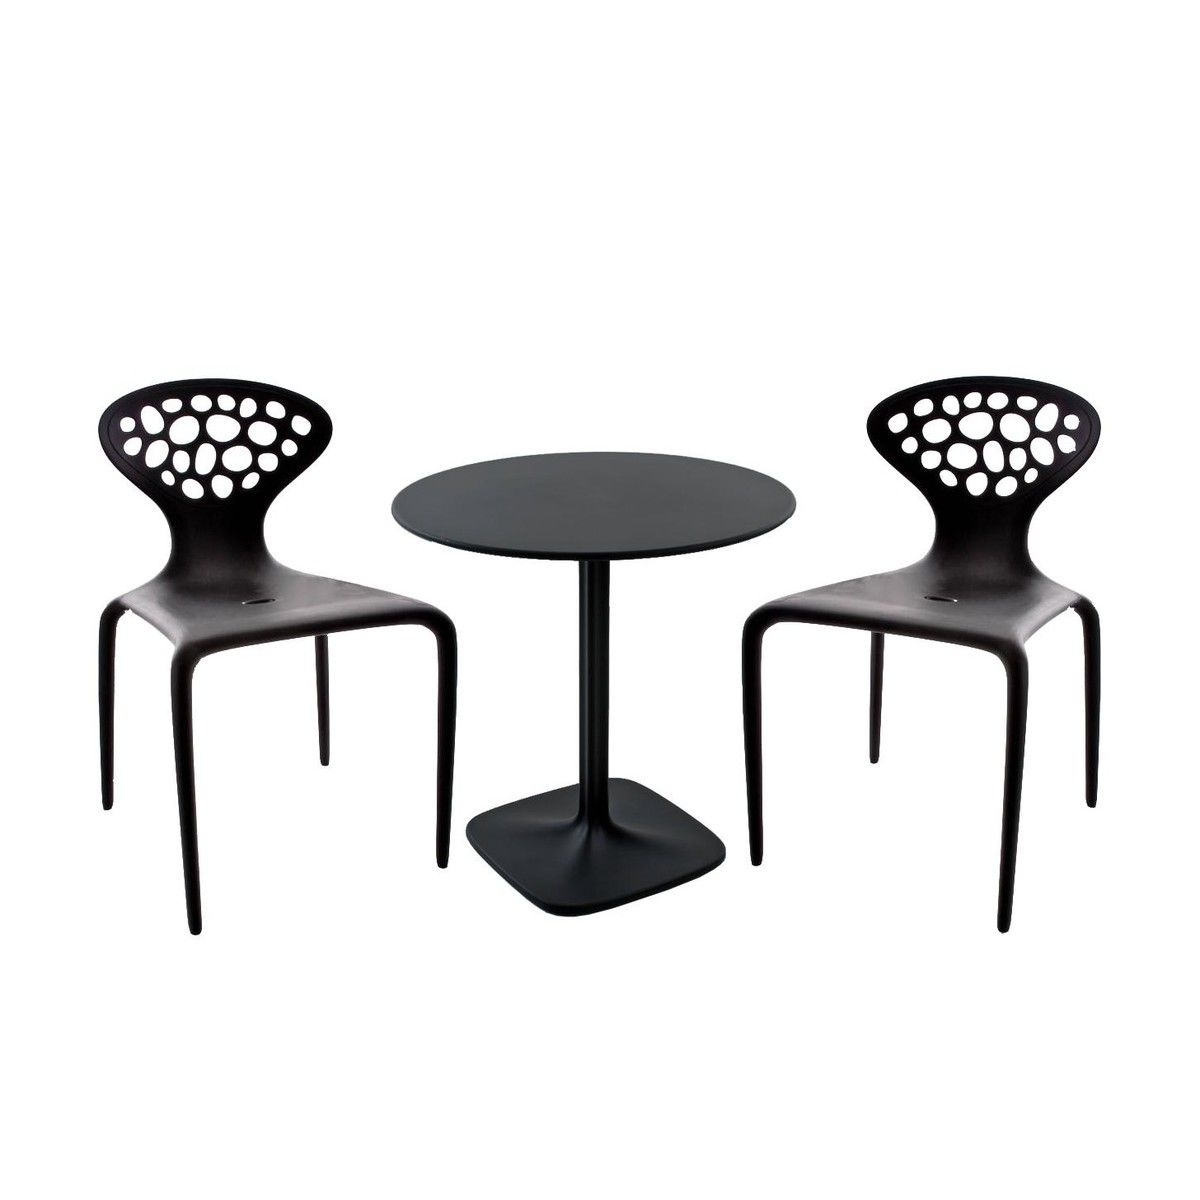 Supernatural set 2 chairs 1 table moroso for Furniture 63376